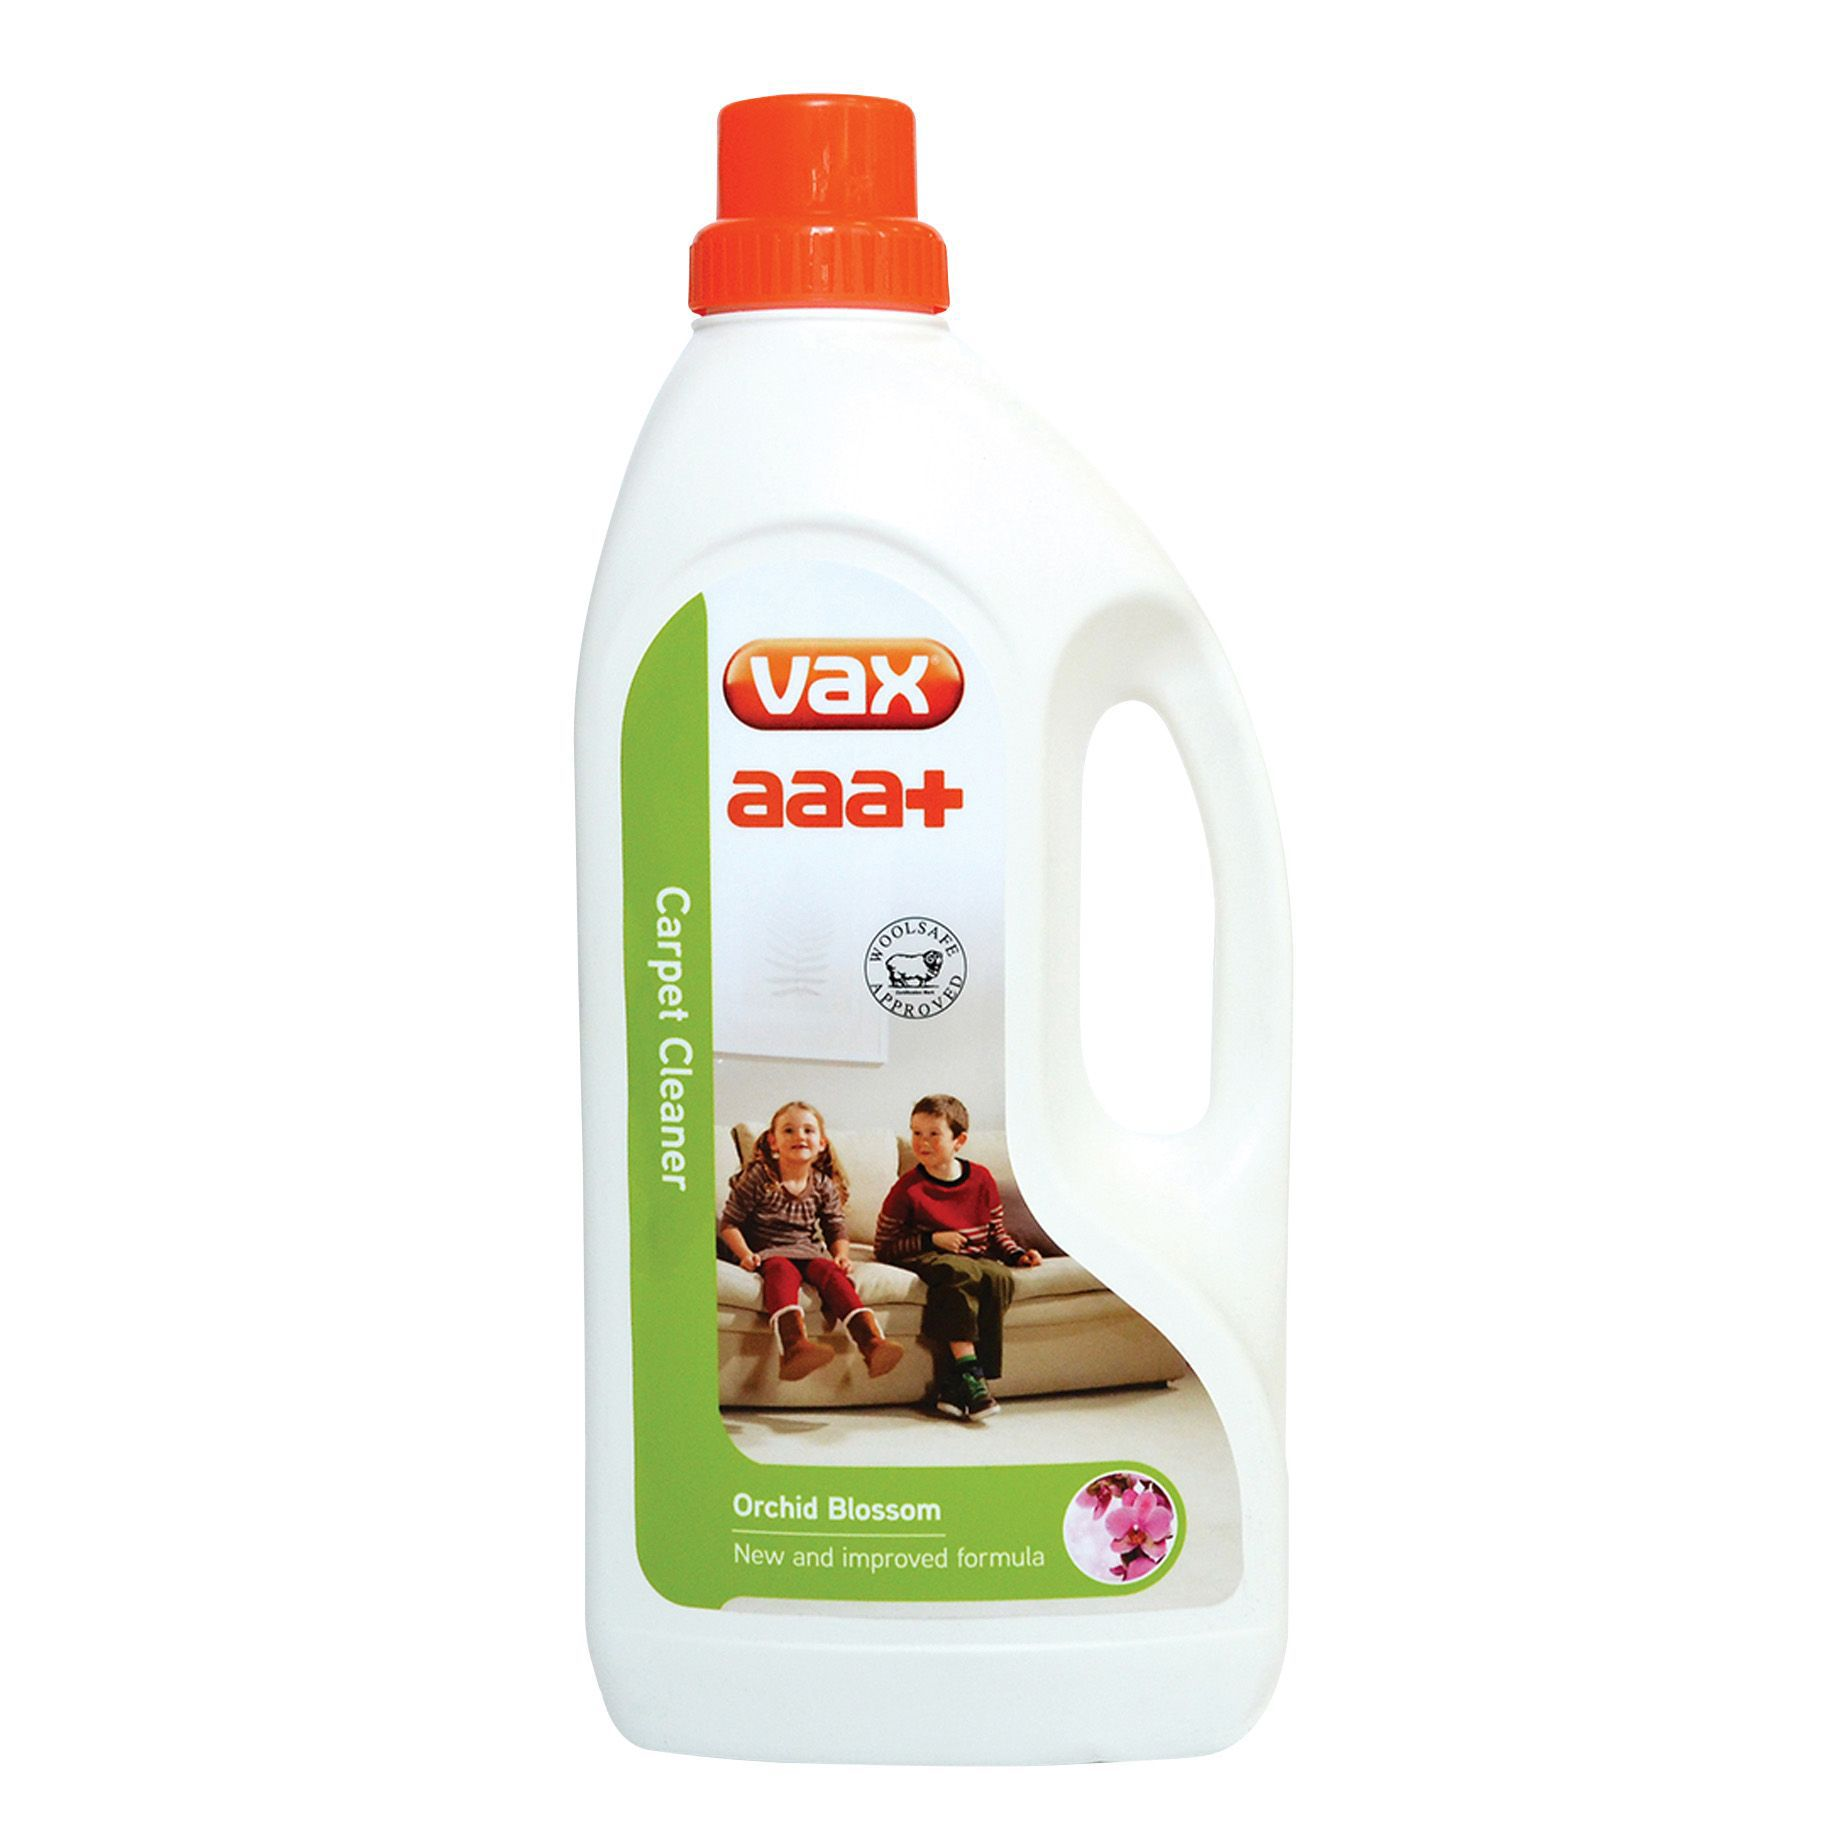 Diy Carpet Cleaner For Pets: Vax AAA Plus Carpet Cleaner, 1500 Ml